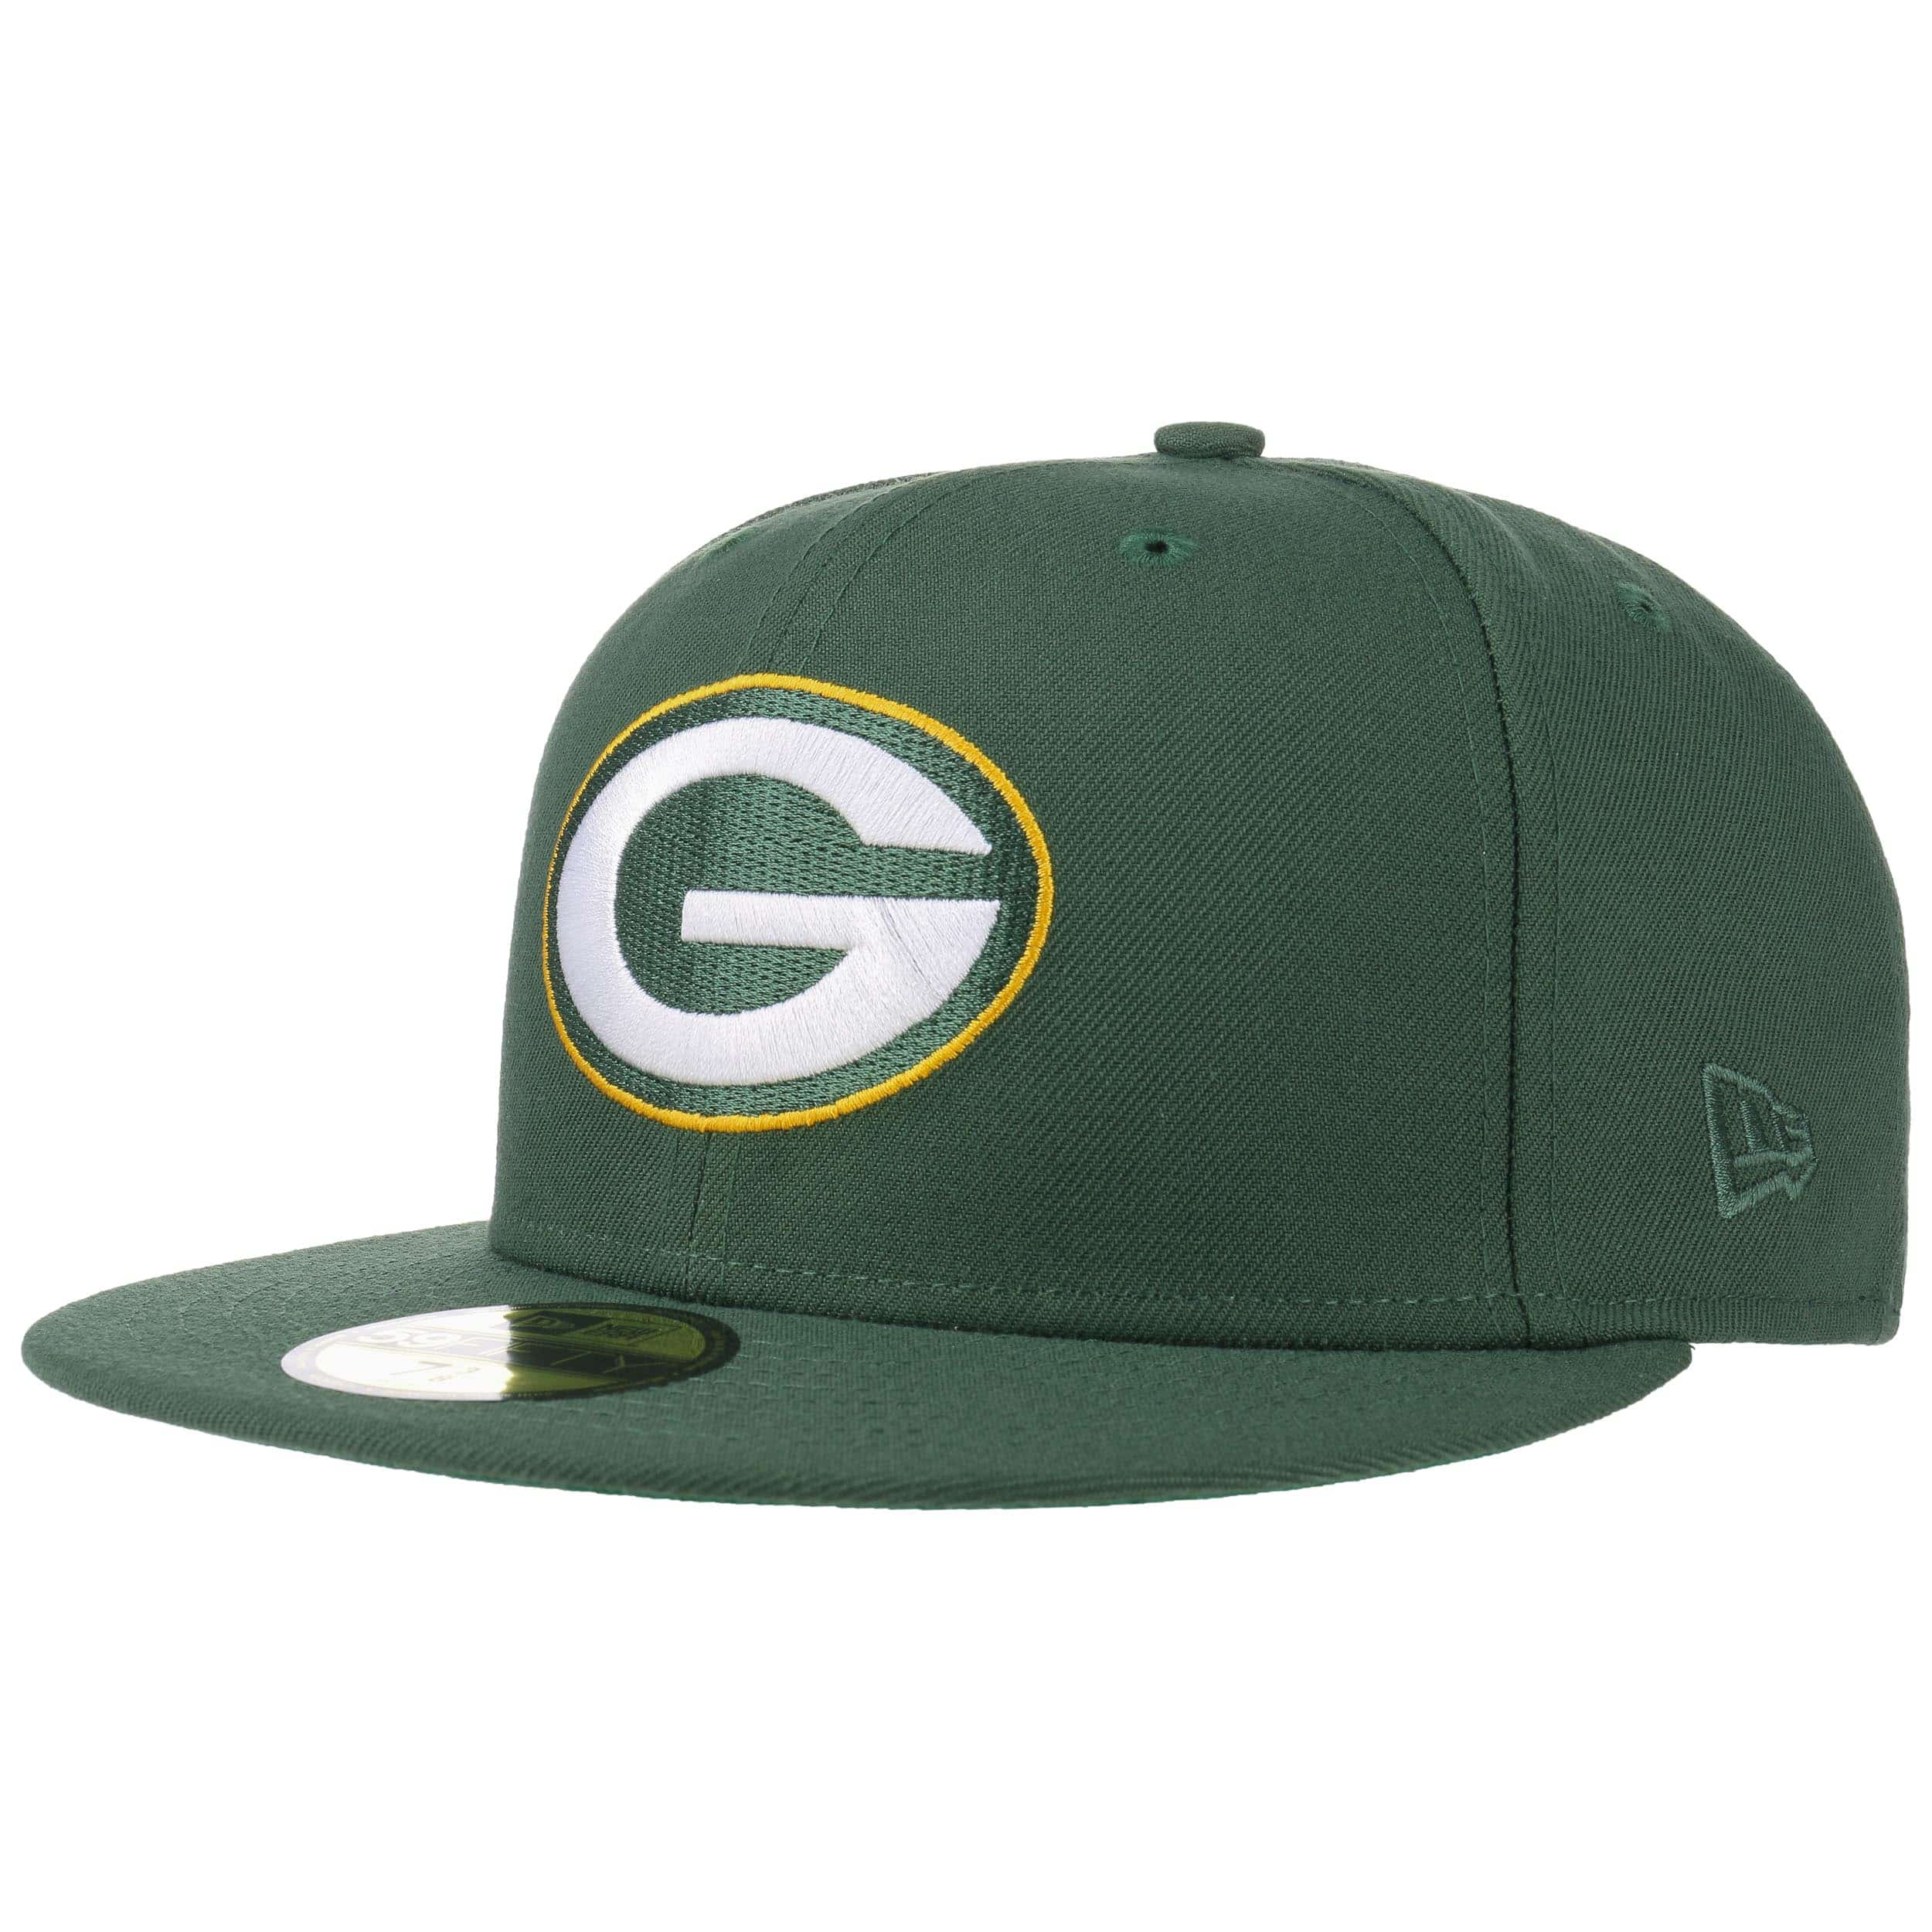 1588a2b67a859 Gorra 59Fifty NFL Classic Packers by New Era - Gorras - sombreroshop.es